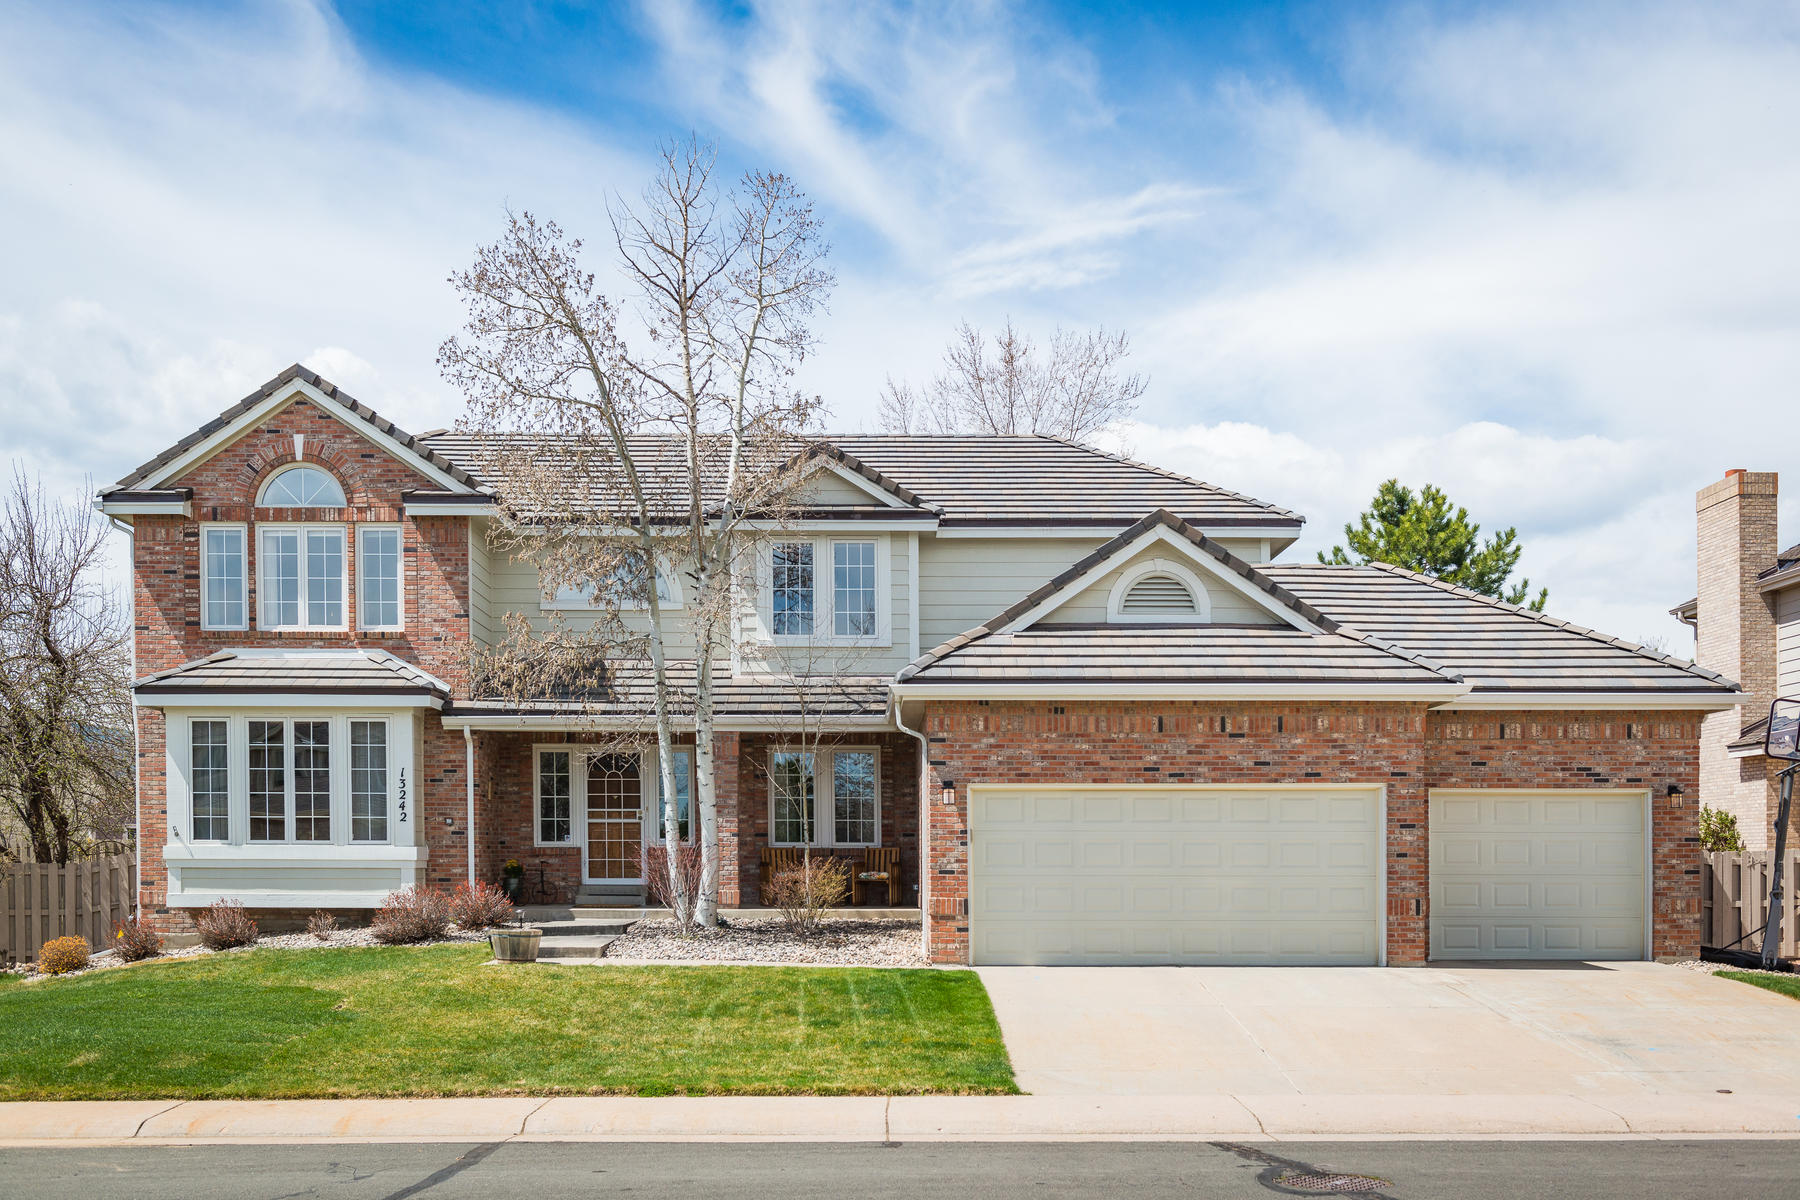 Single Family Home for Active at Bright and inviting home in picturesque Bear Creek Village! 13242 W La Salle Cir Lakewood, Colorado 80228 United States